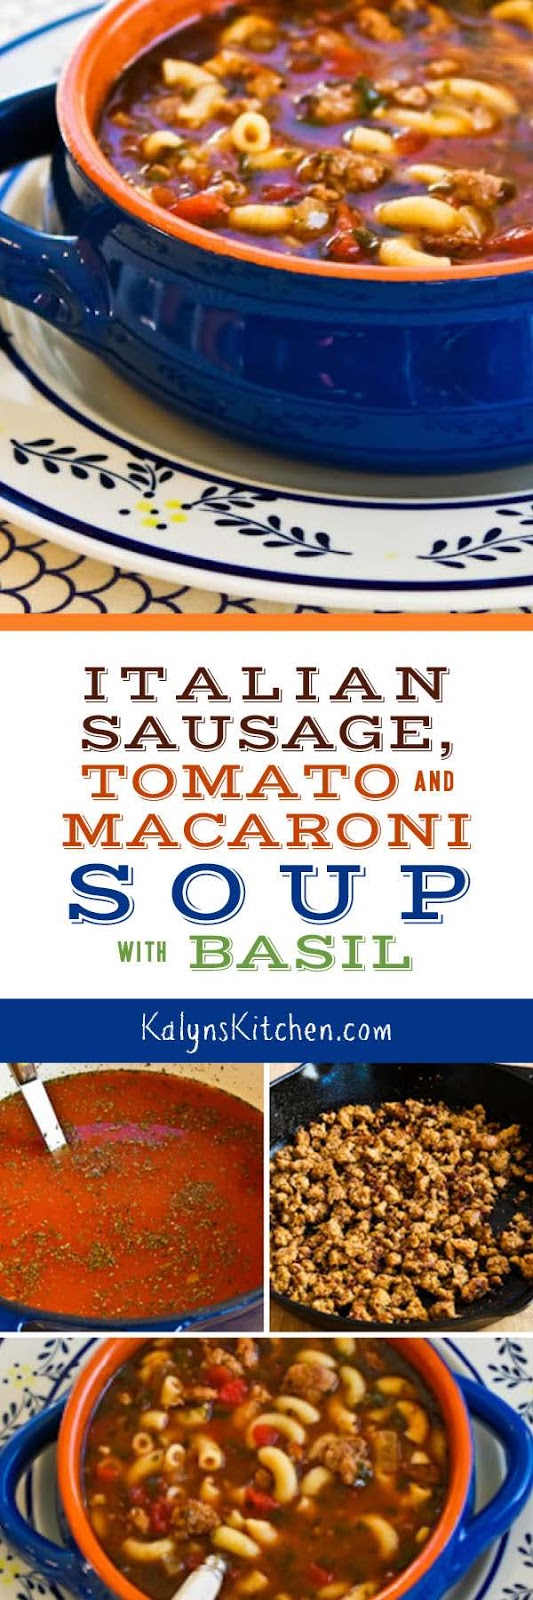 ... Kitchen®: Easy Italian Sausage, Tomato, and Macaroni Soup with Basil